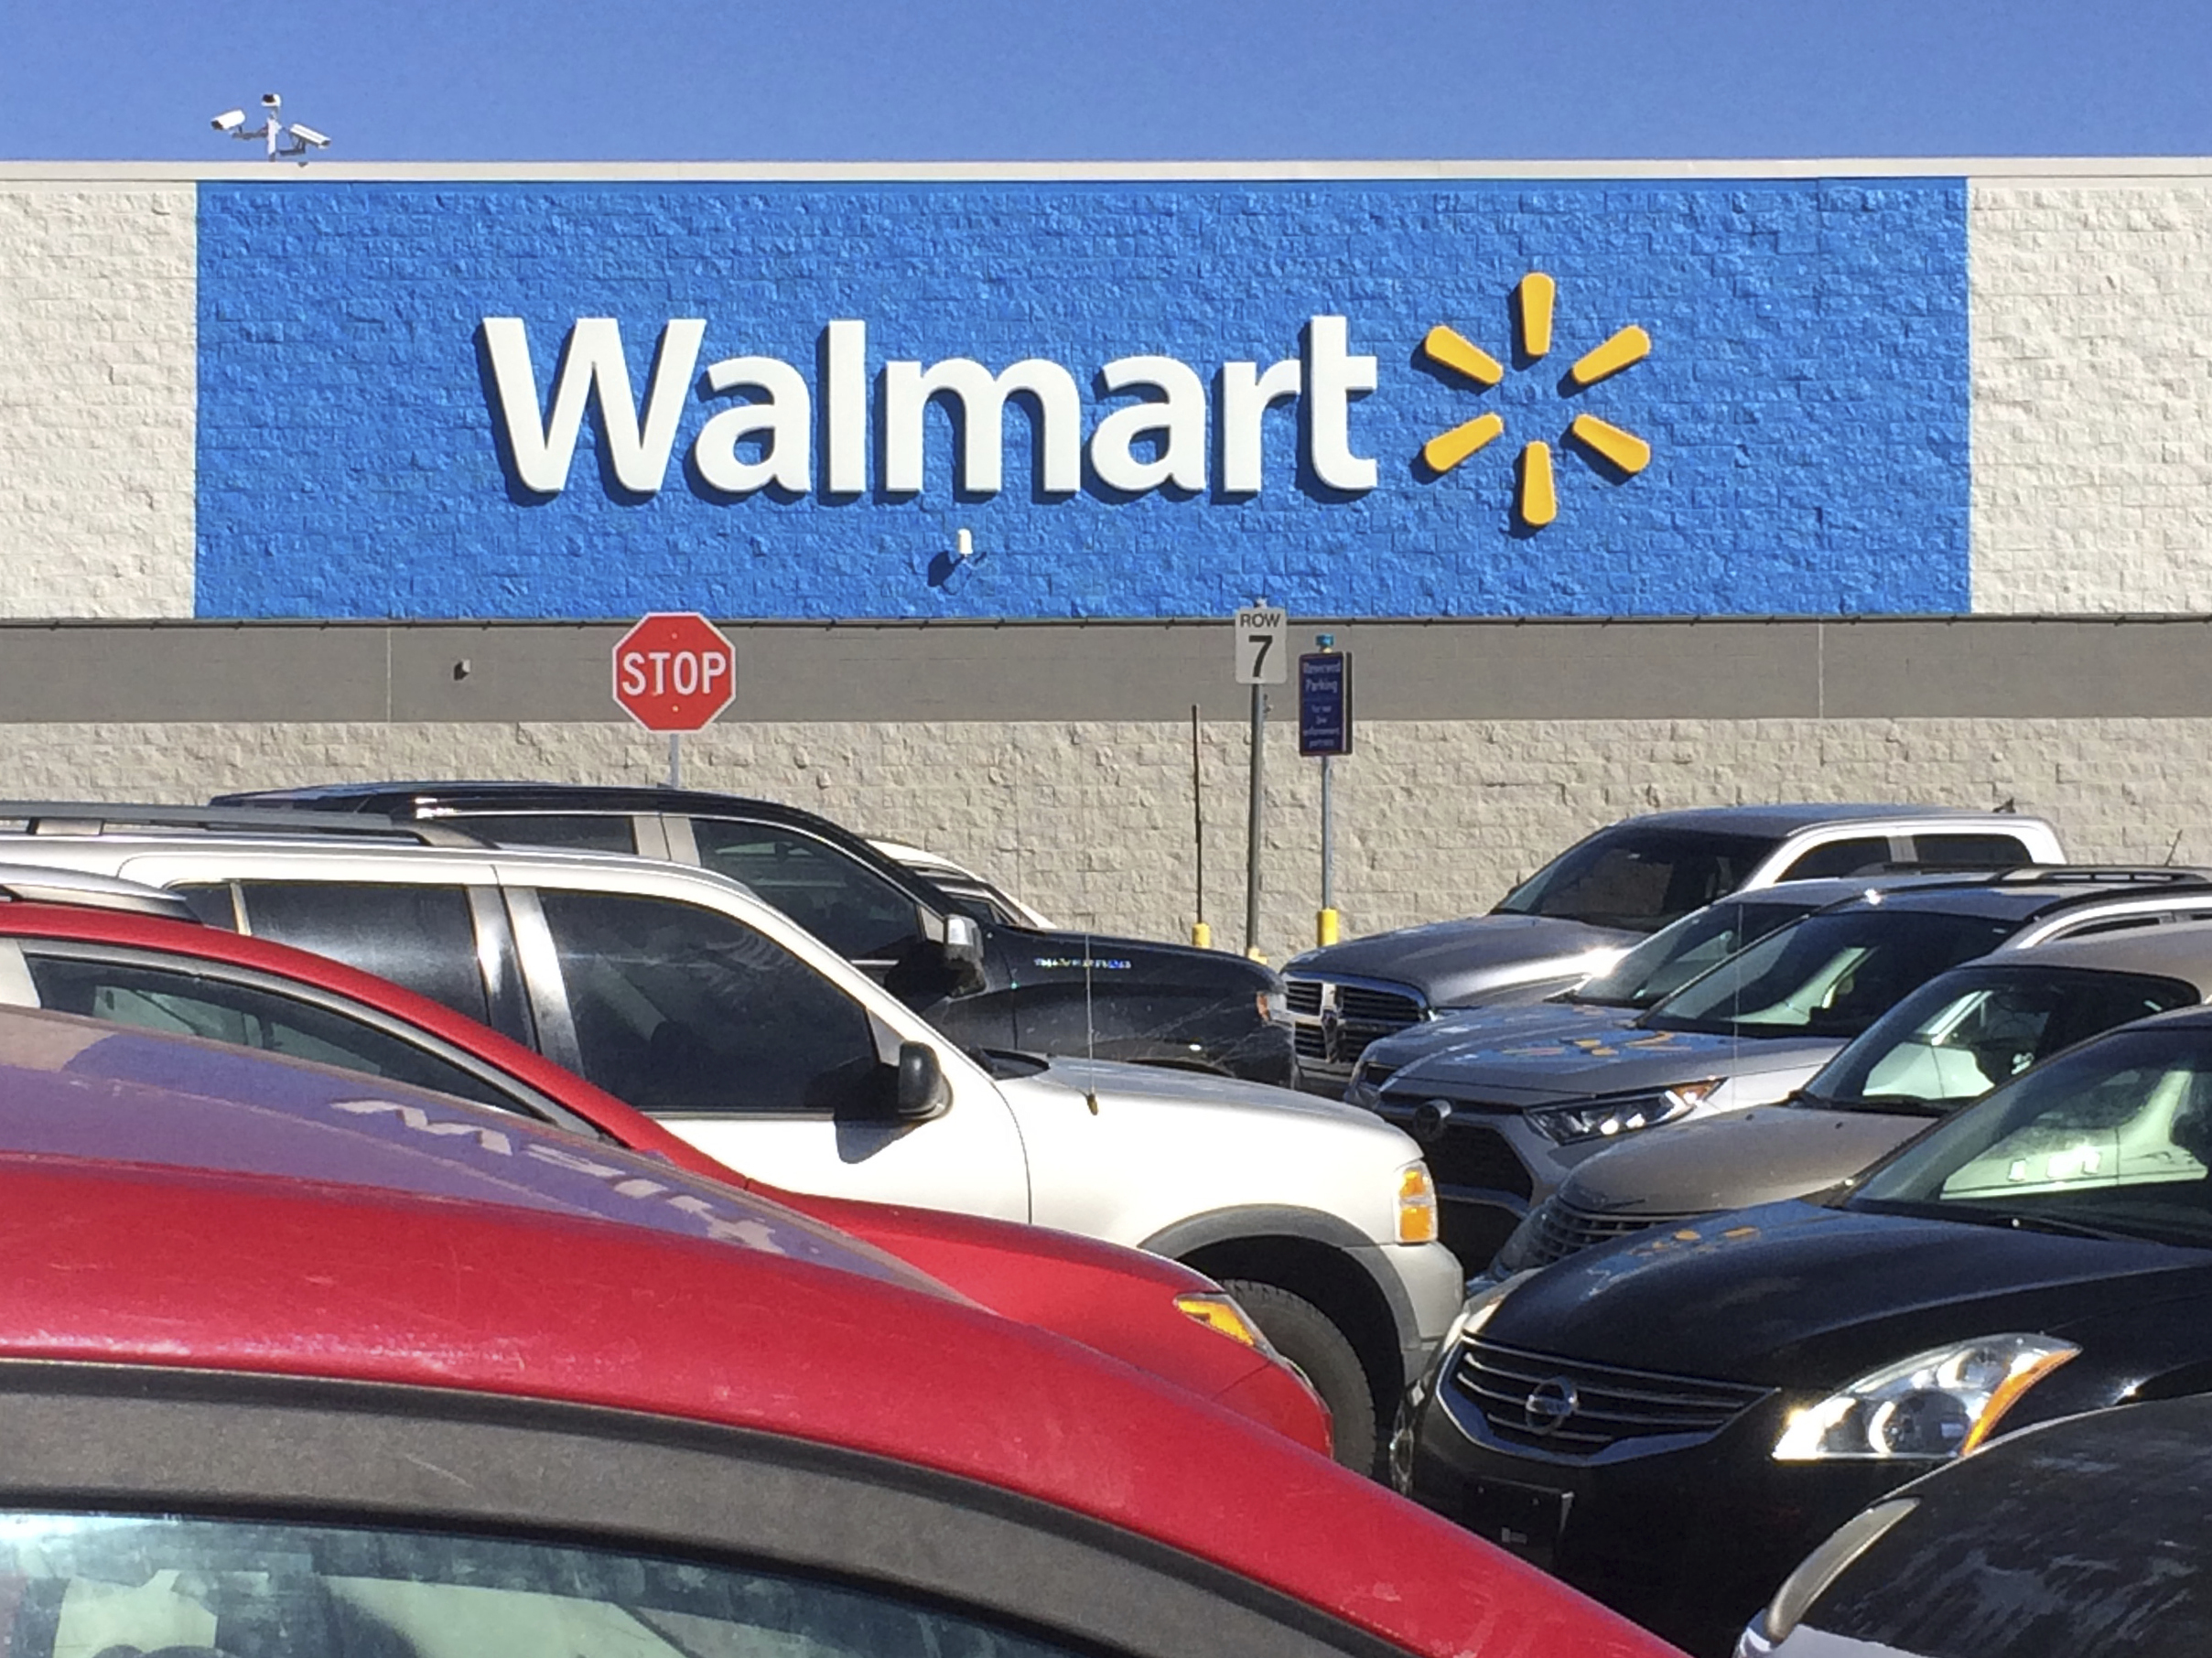 Photo by: BBB/STAR MAX/IPx 2021 2/24/21 A Walmart is seen in Stillwater, Oklahoma.